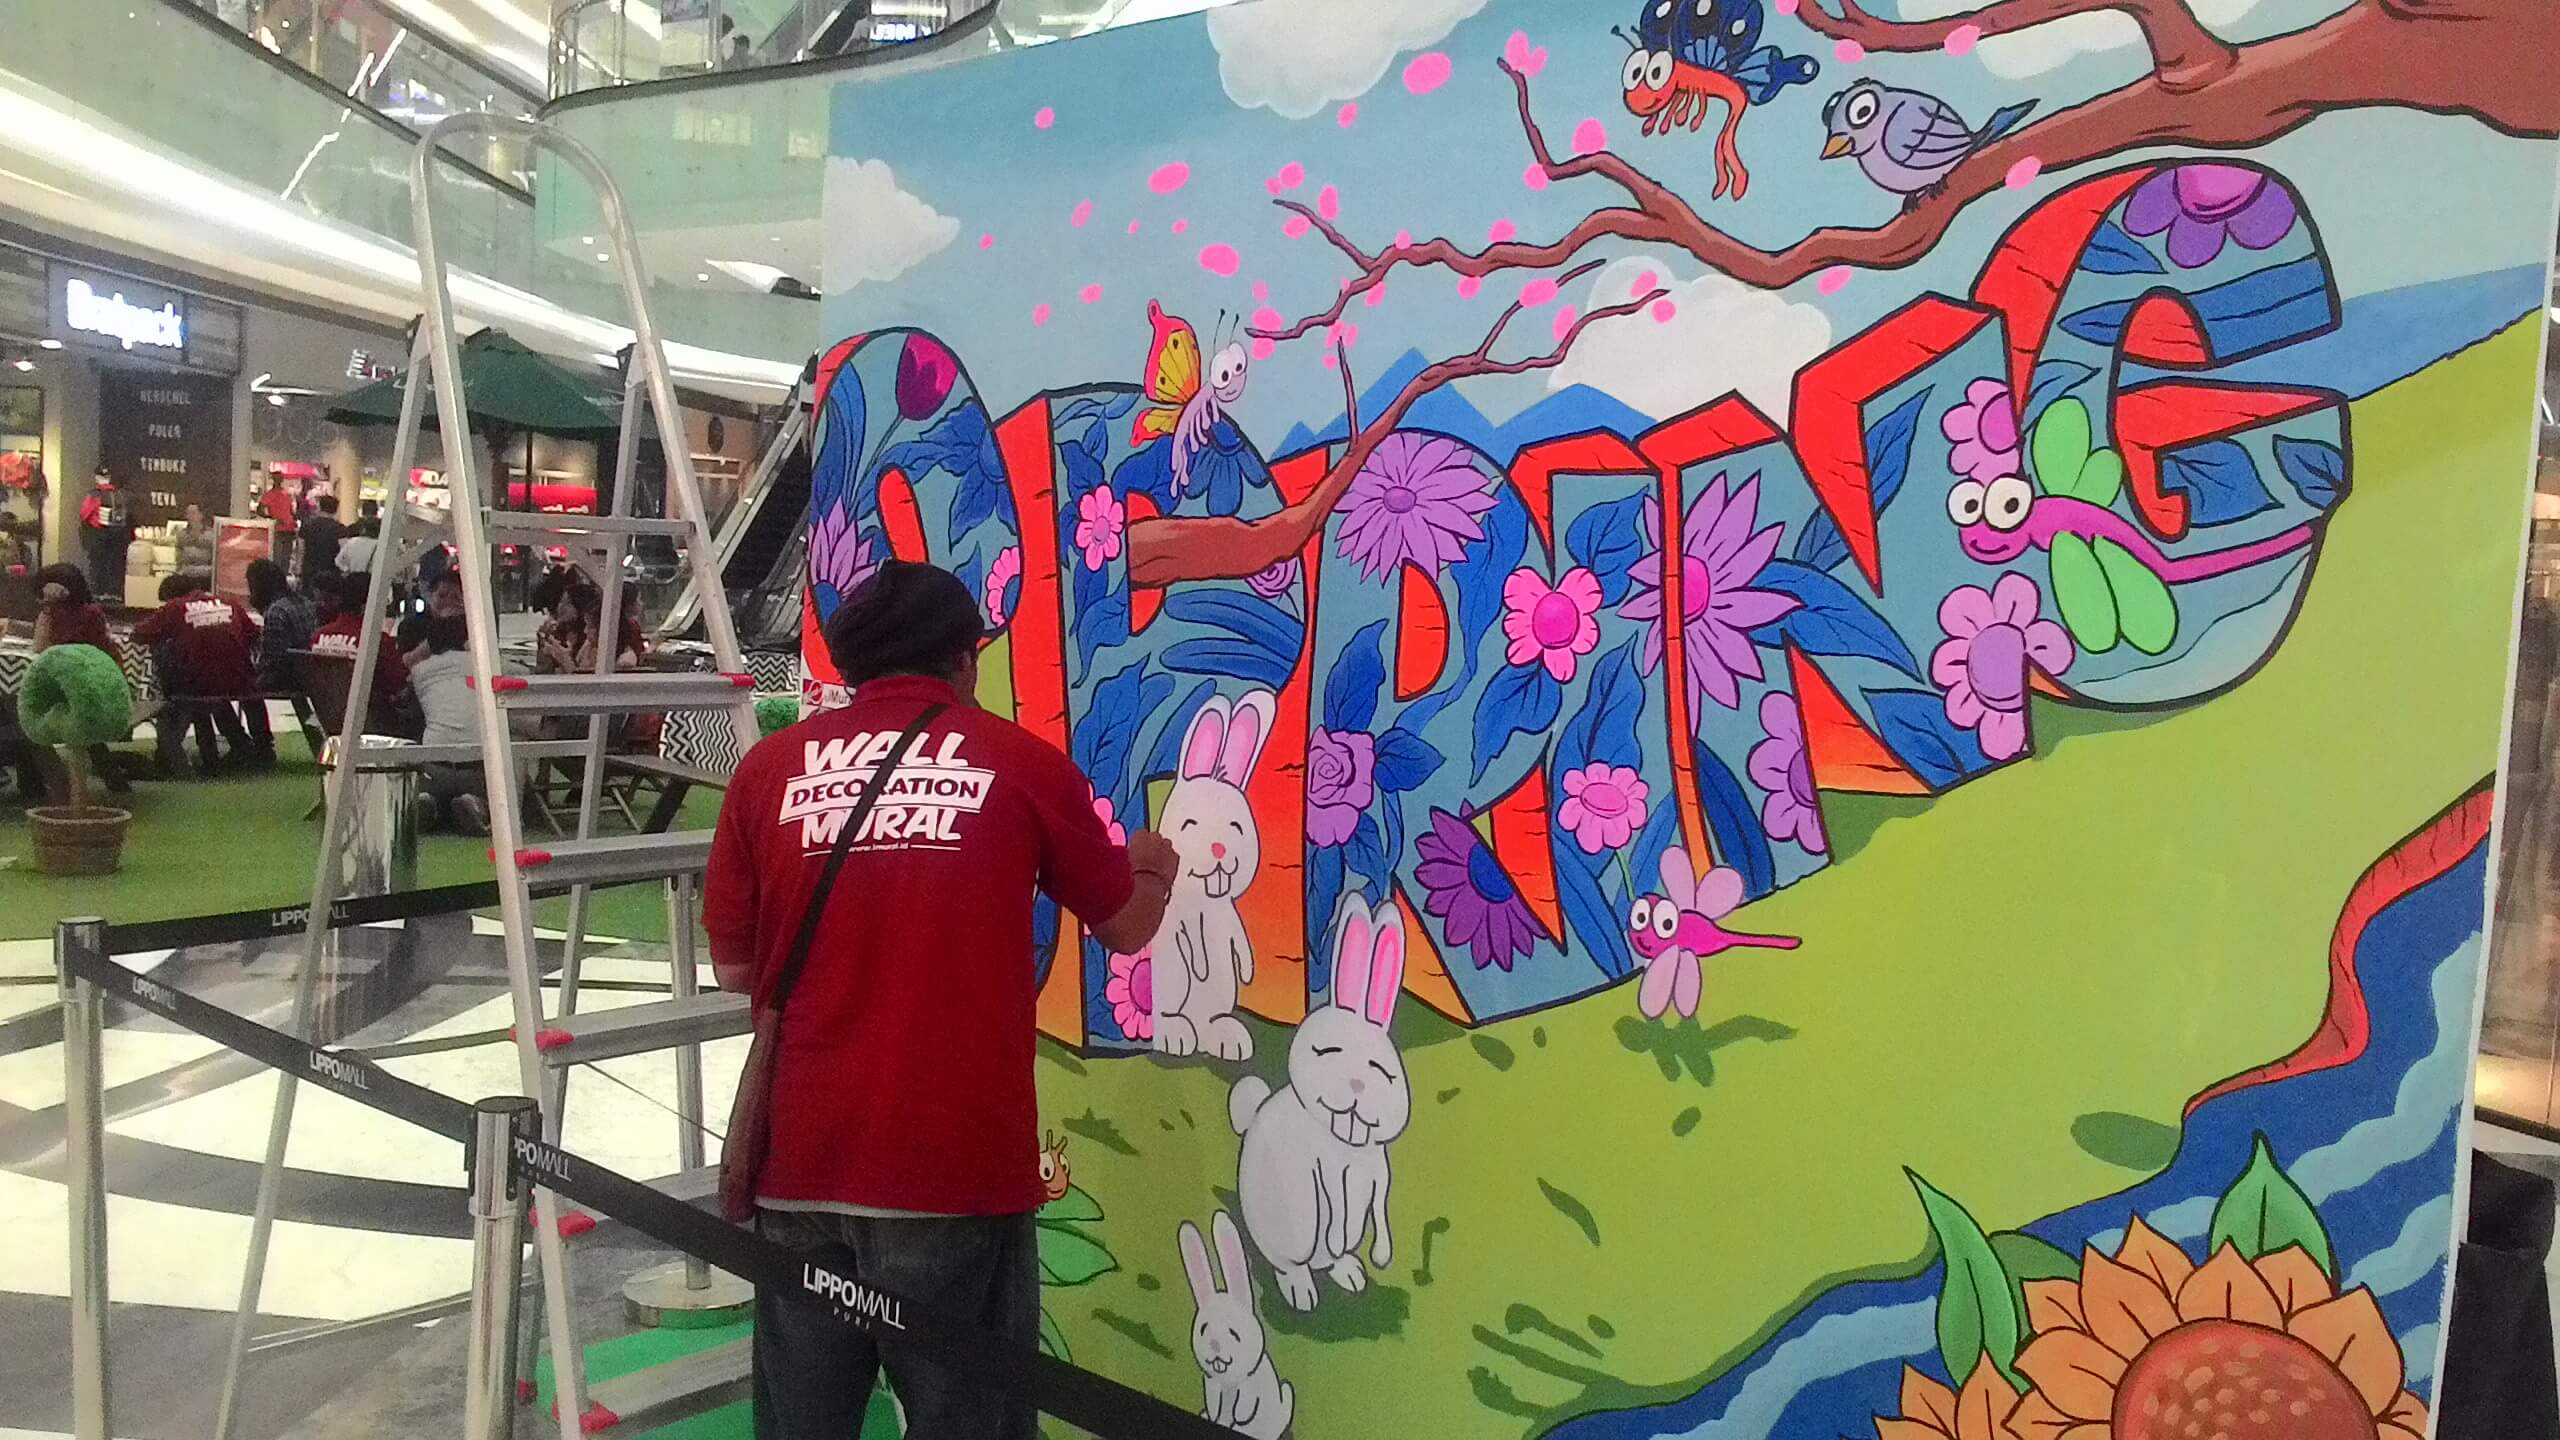 Live Mural Painting at Lippo Mall Puri